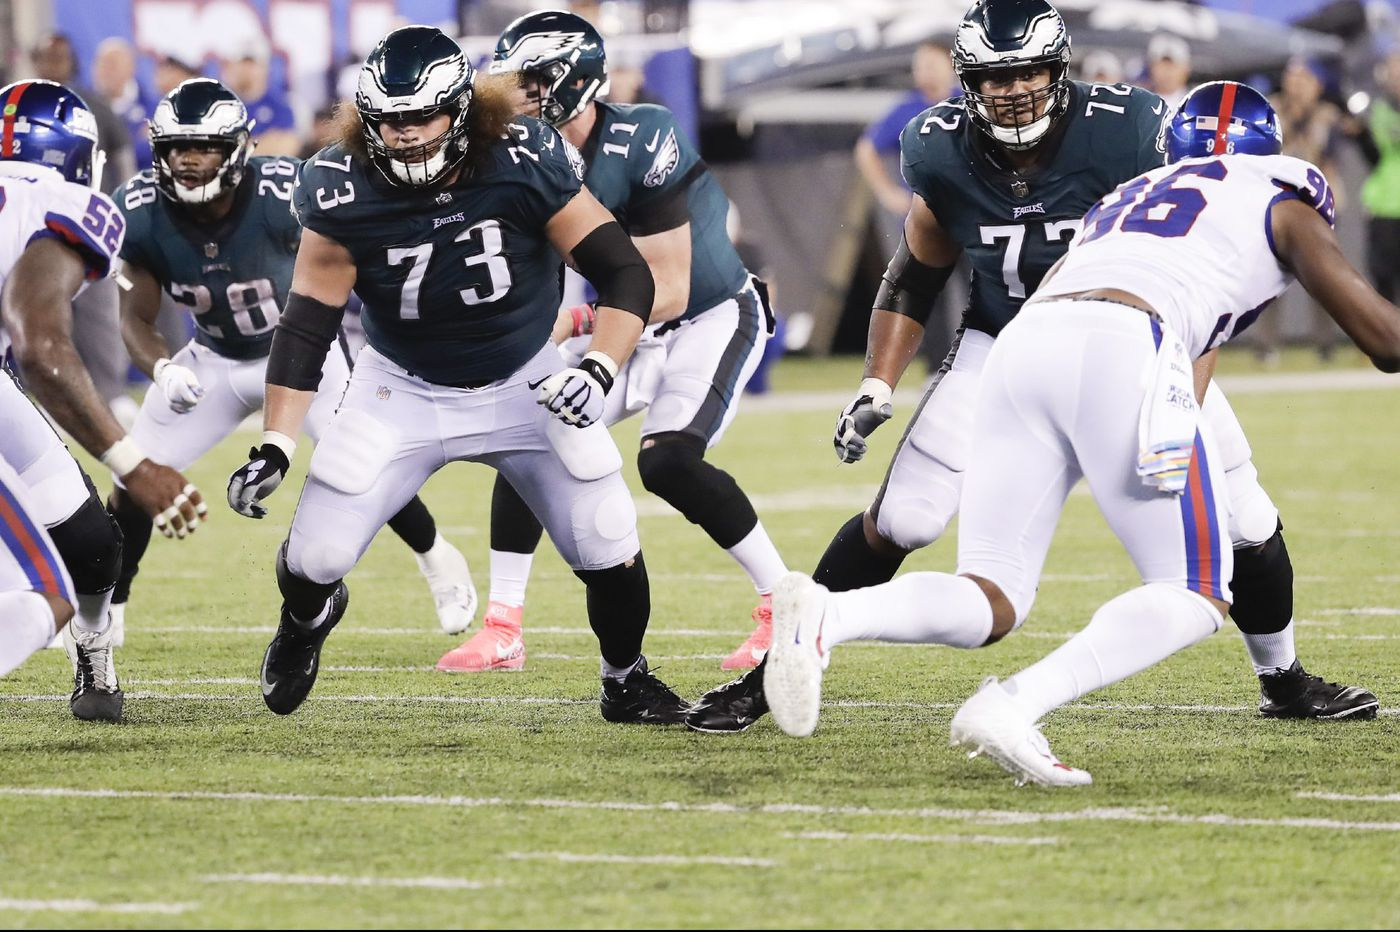 Eagles' Isaac Seumalo, the once-promising offensive lineman, is settling in as a starter